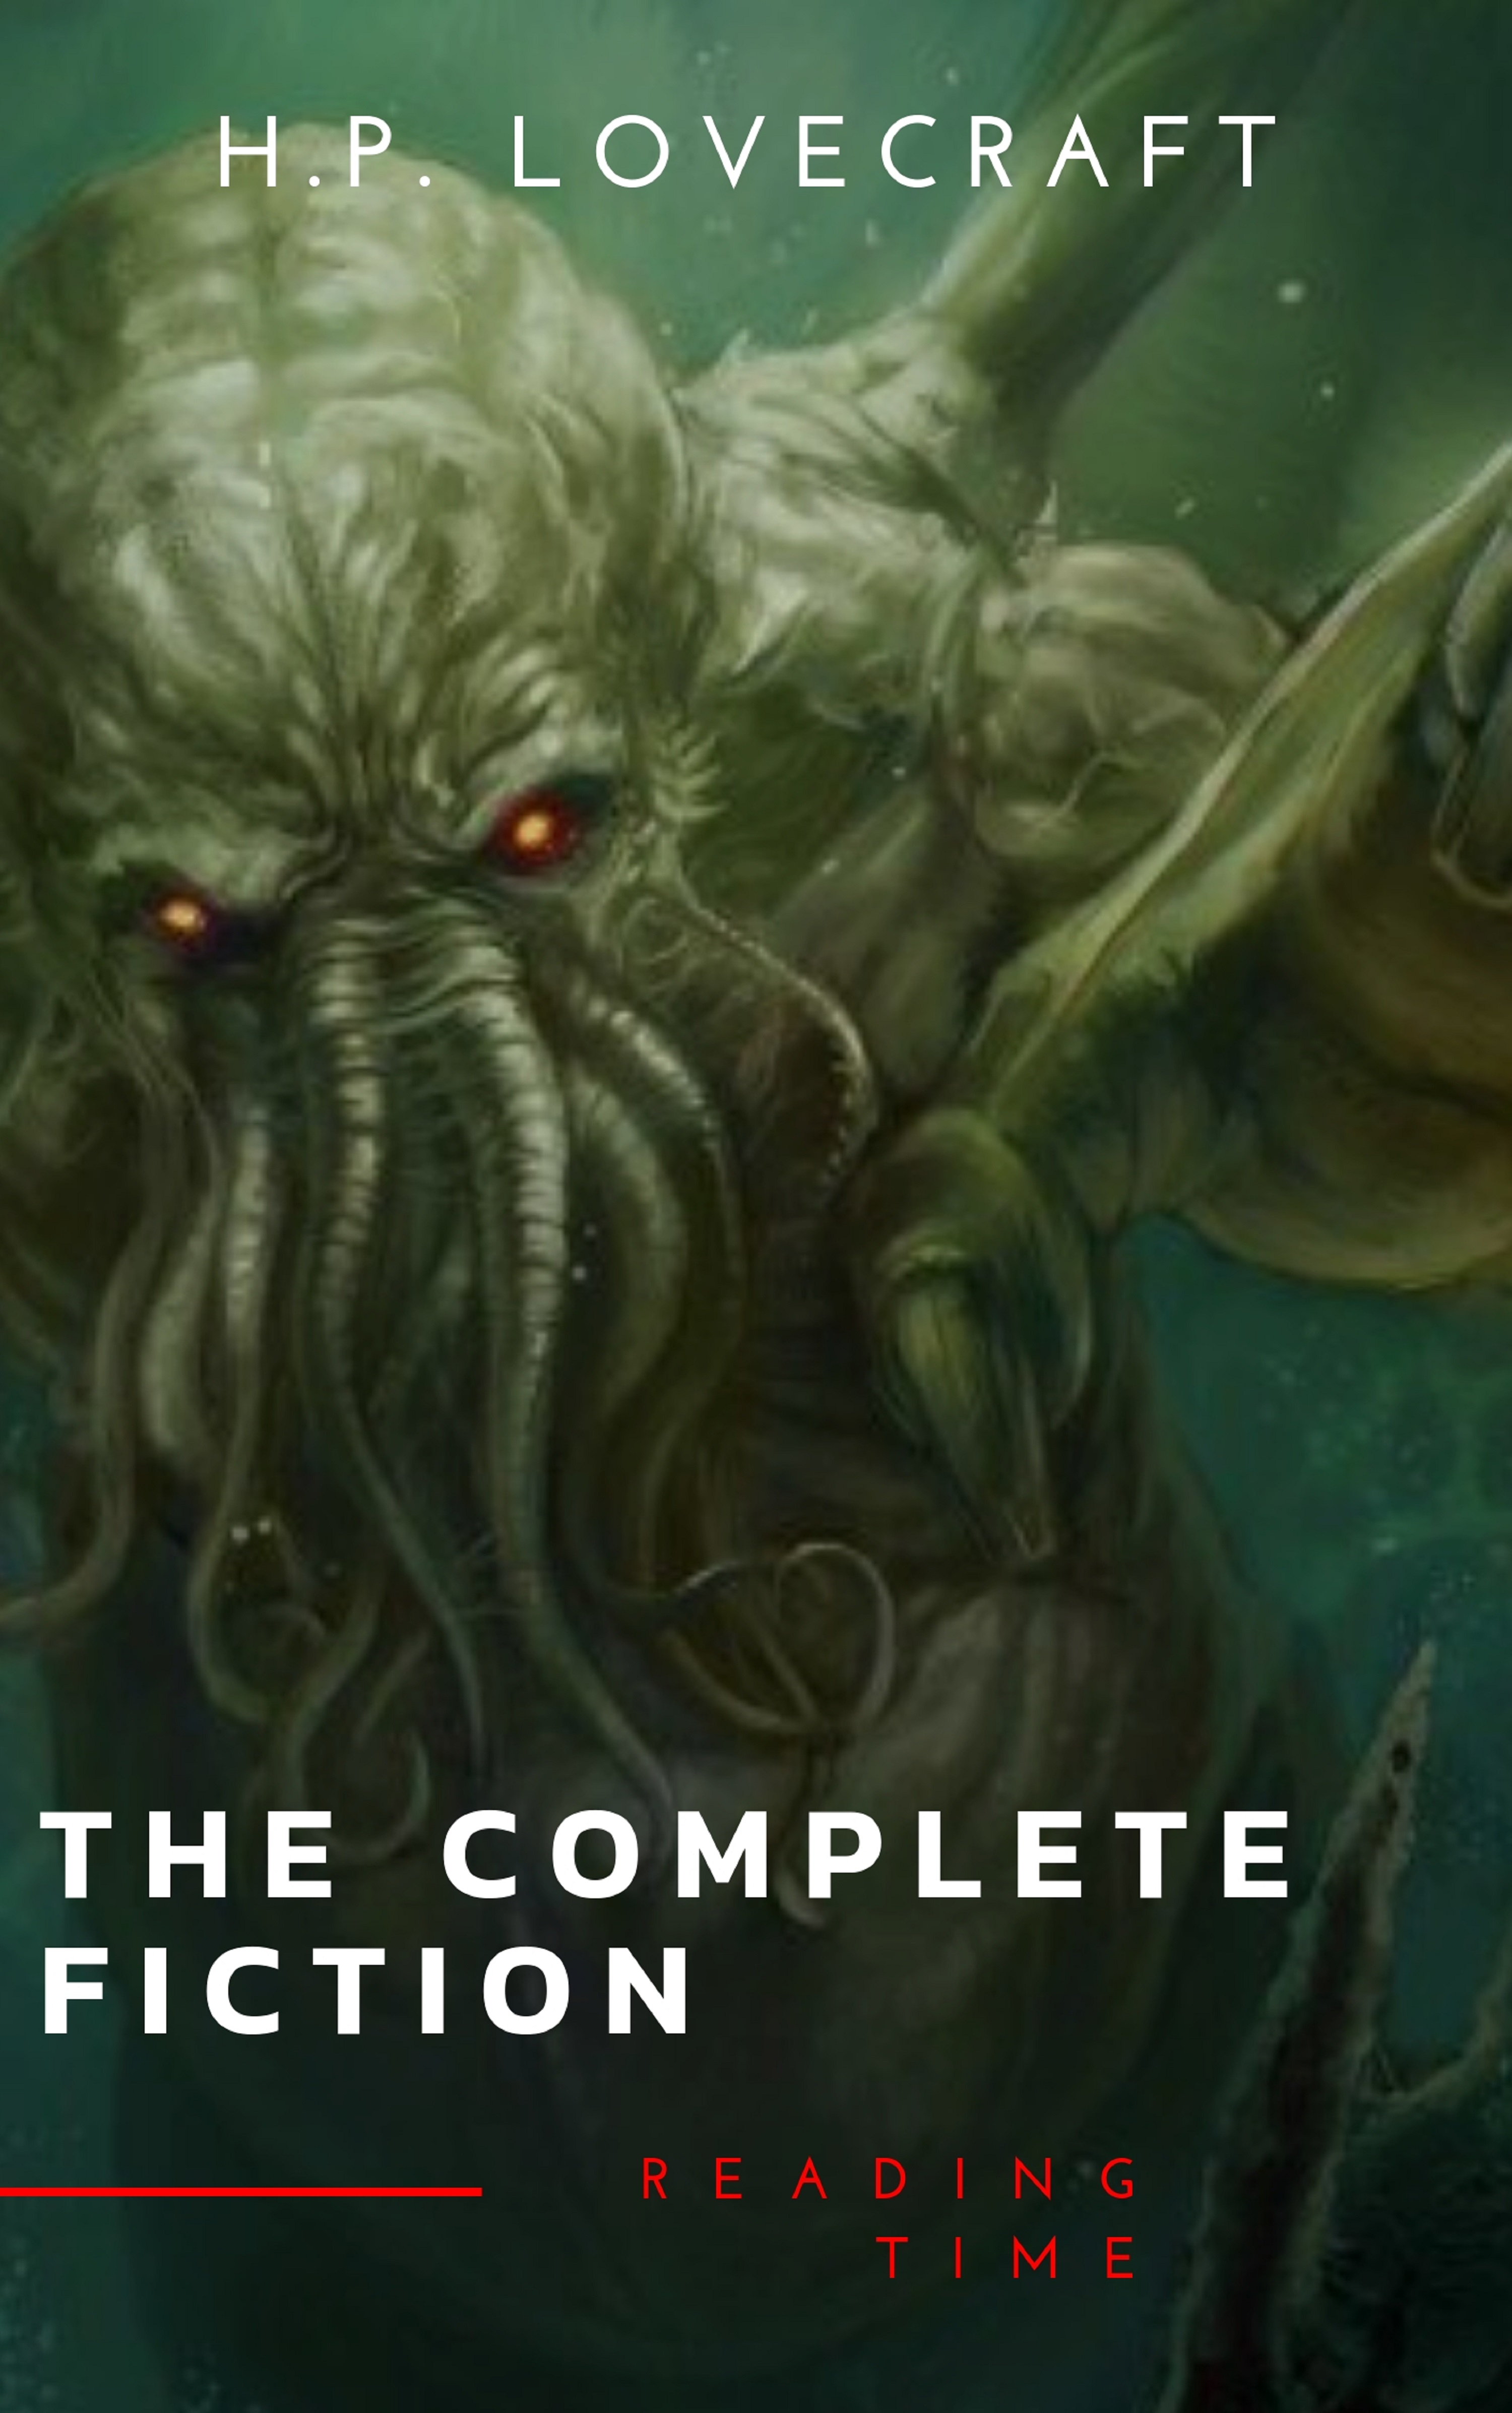 Говард Филлипс Лавкрафт The Complete Fiction of H. P. Lovecraft: At the Mountains of Madness, The Call of Cthulhu, The Case of Charles Dexter Ward, The Shadow over Innsmouth, ... h p lovecraft the complete fiction of h p lovecraft